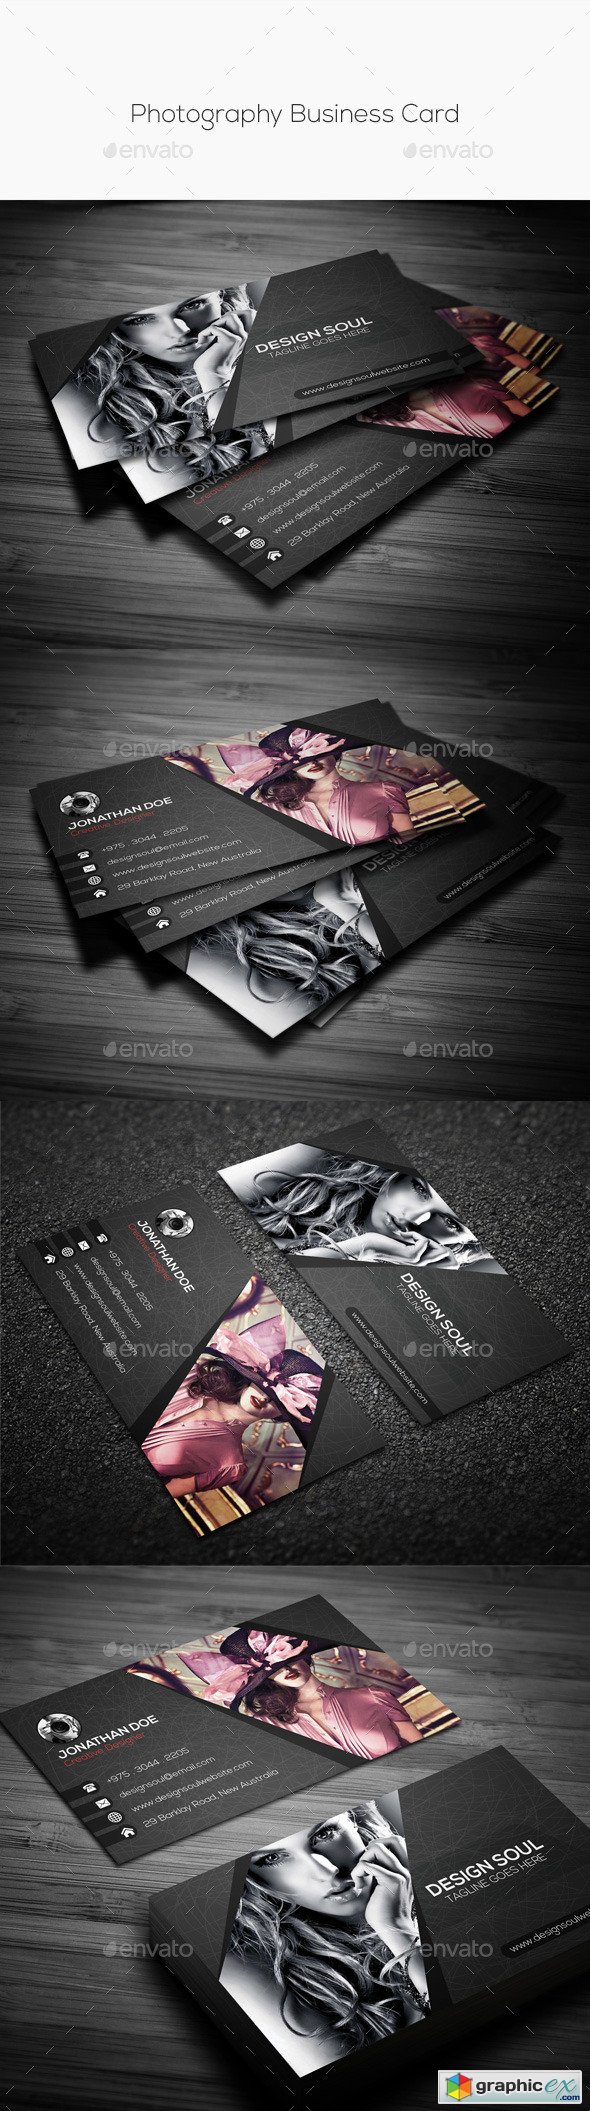 Photography Business Card 10361368